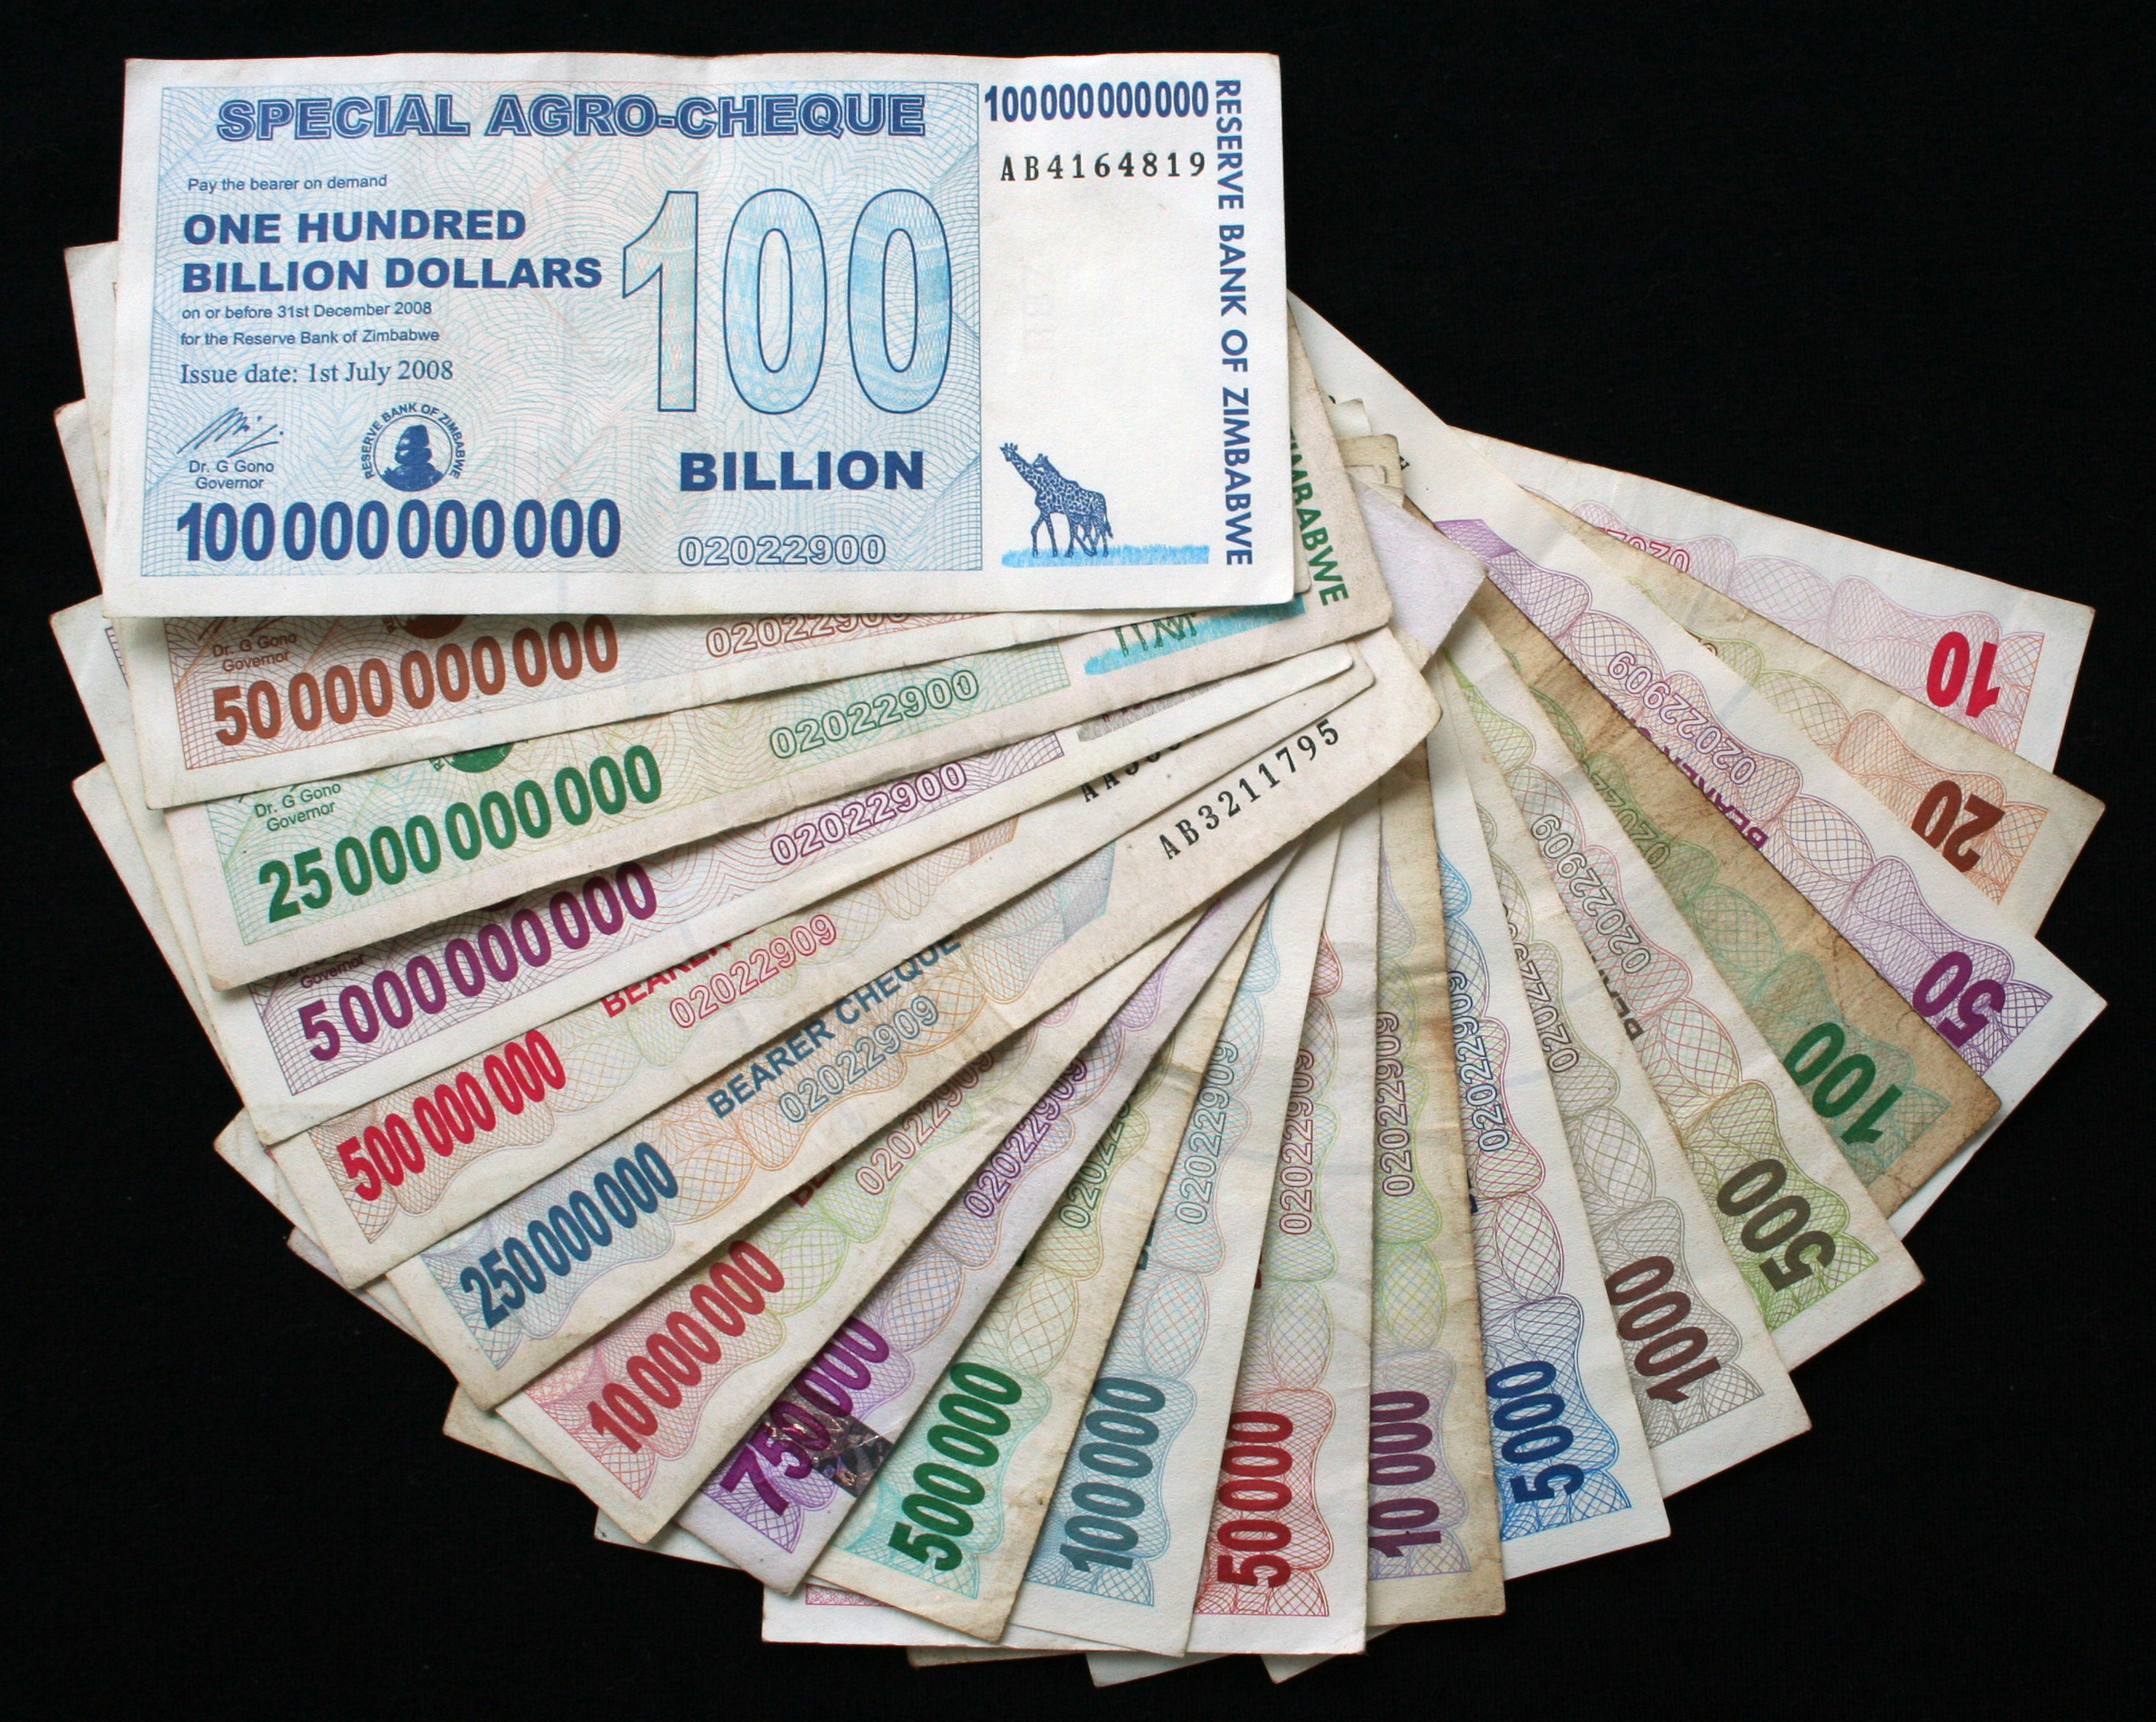 Zimbabwe dollar bills from $10 to $100,000,000,000.